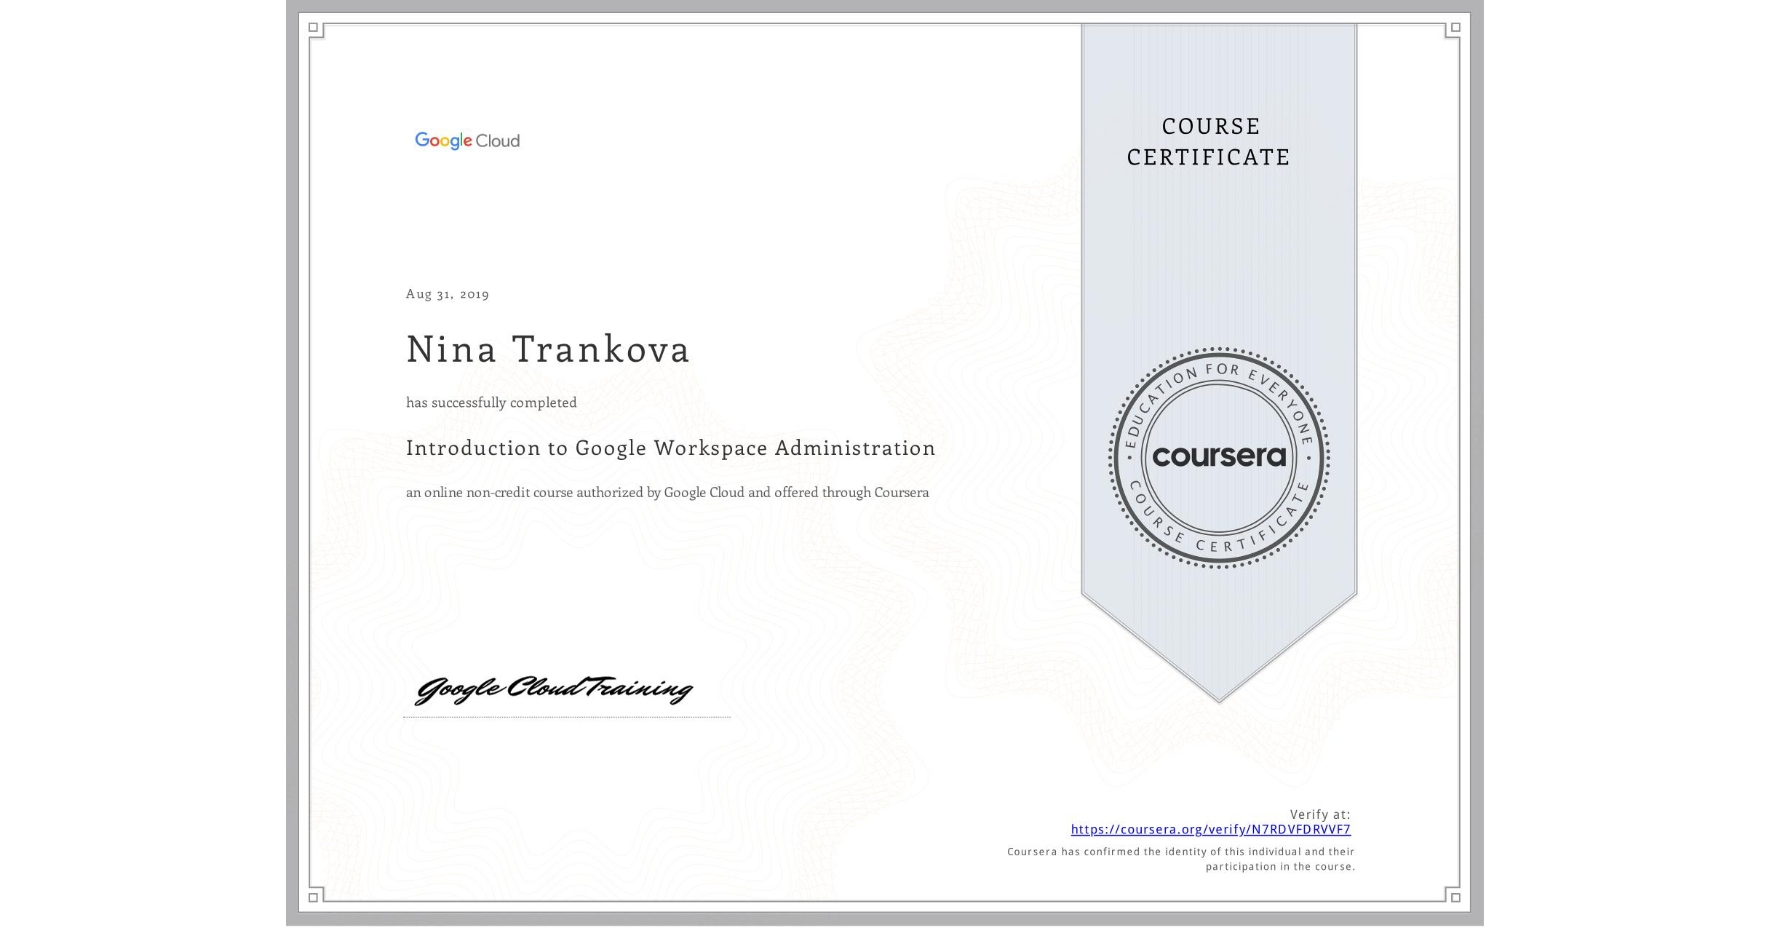 View certificate for Nina Trankova, Introduction to Google Workspace, an online non-credit course authorized by Google Cloud and offered through Coursera